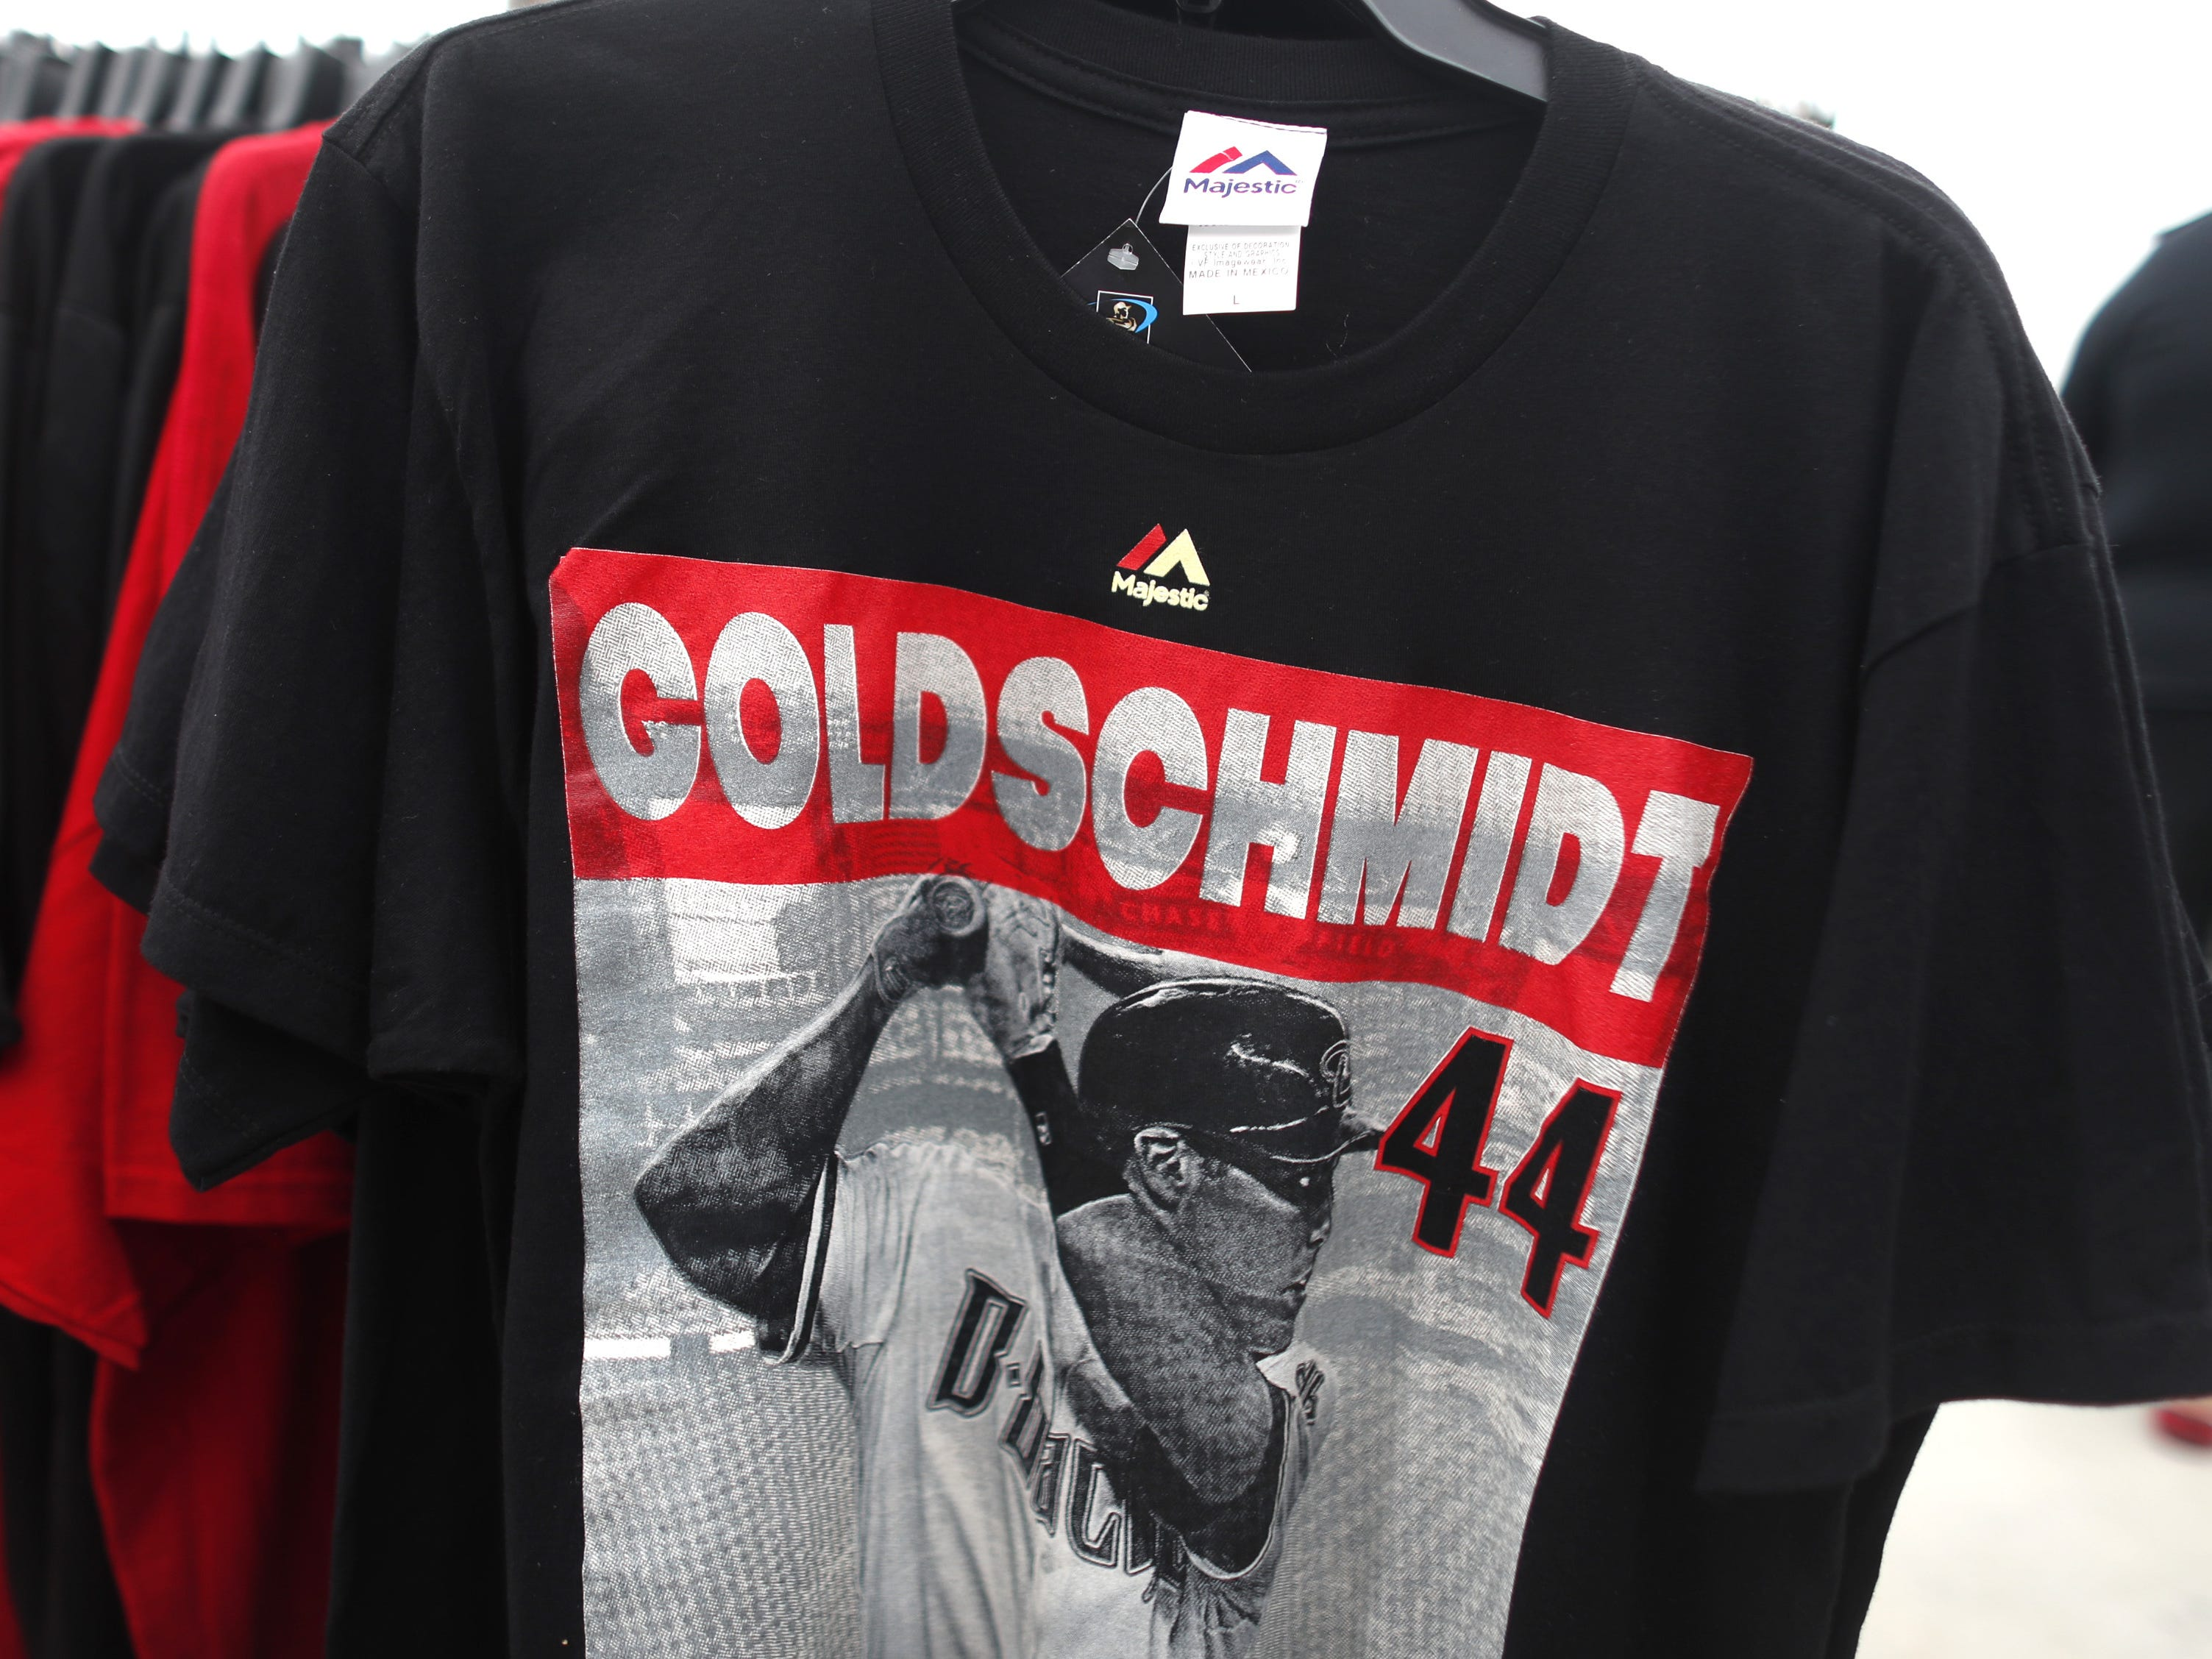 Shirts with the image of former Diamondbacks player Paul Goldschmidt on clearance during the Diamondbacks Fan Fest at Salt River at Talking Sticks on February 9, 2019.